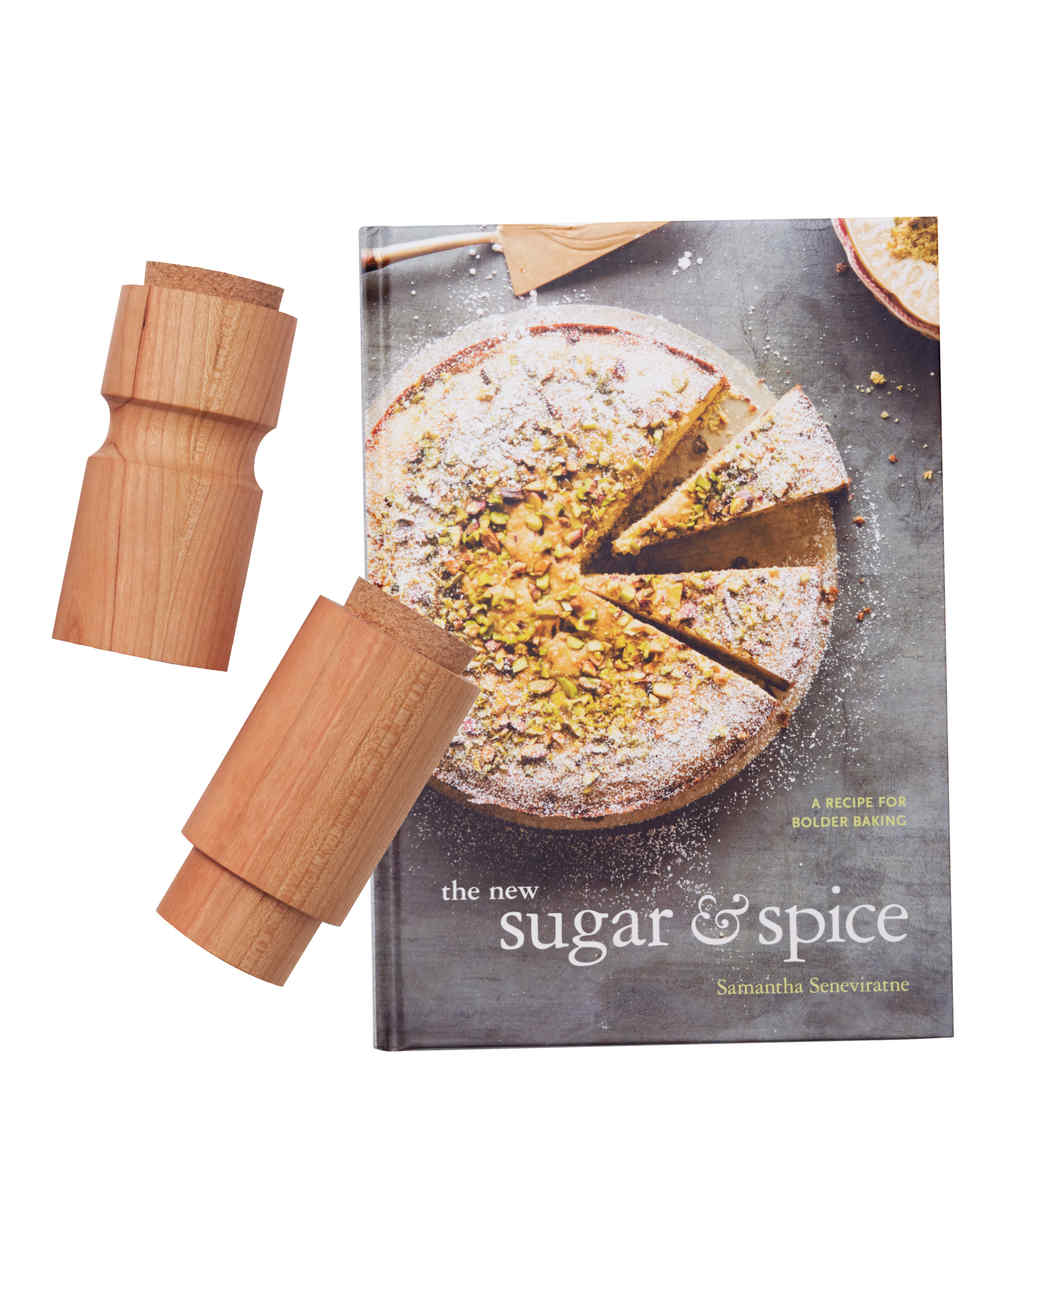 sugar-and-spice-book-with-canisters-039-d112519.jpg